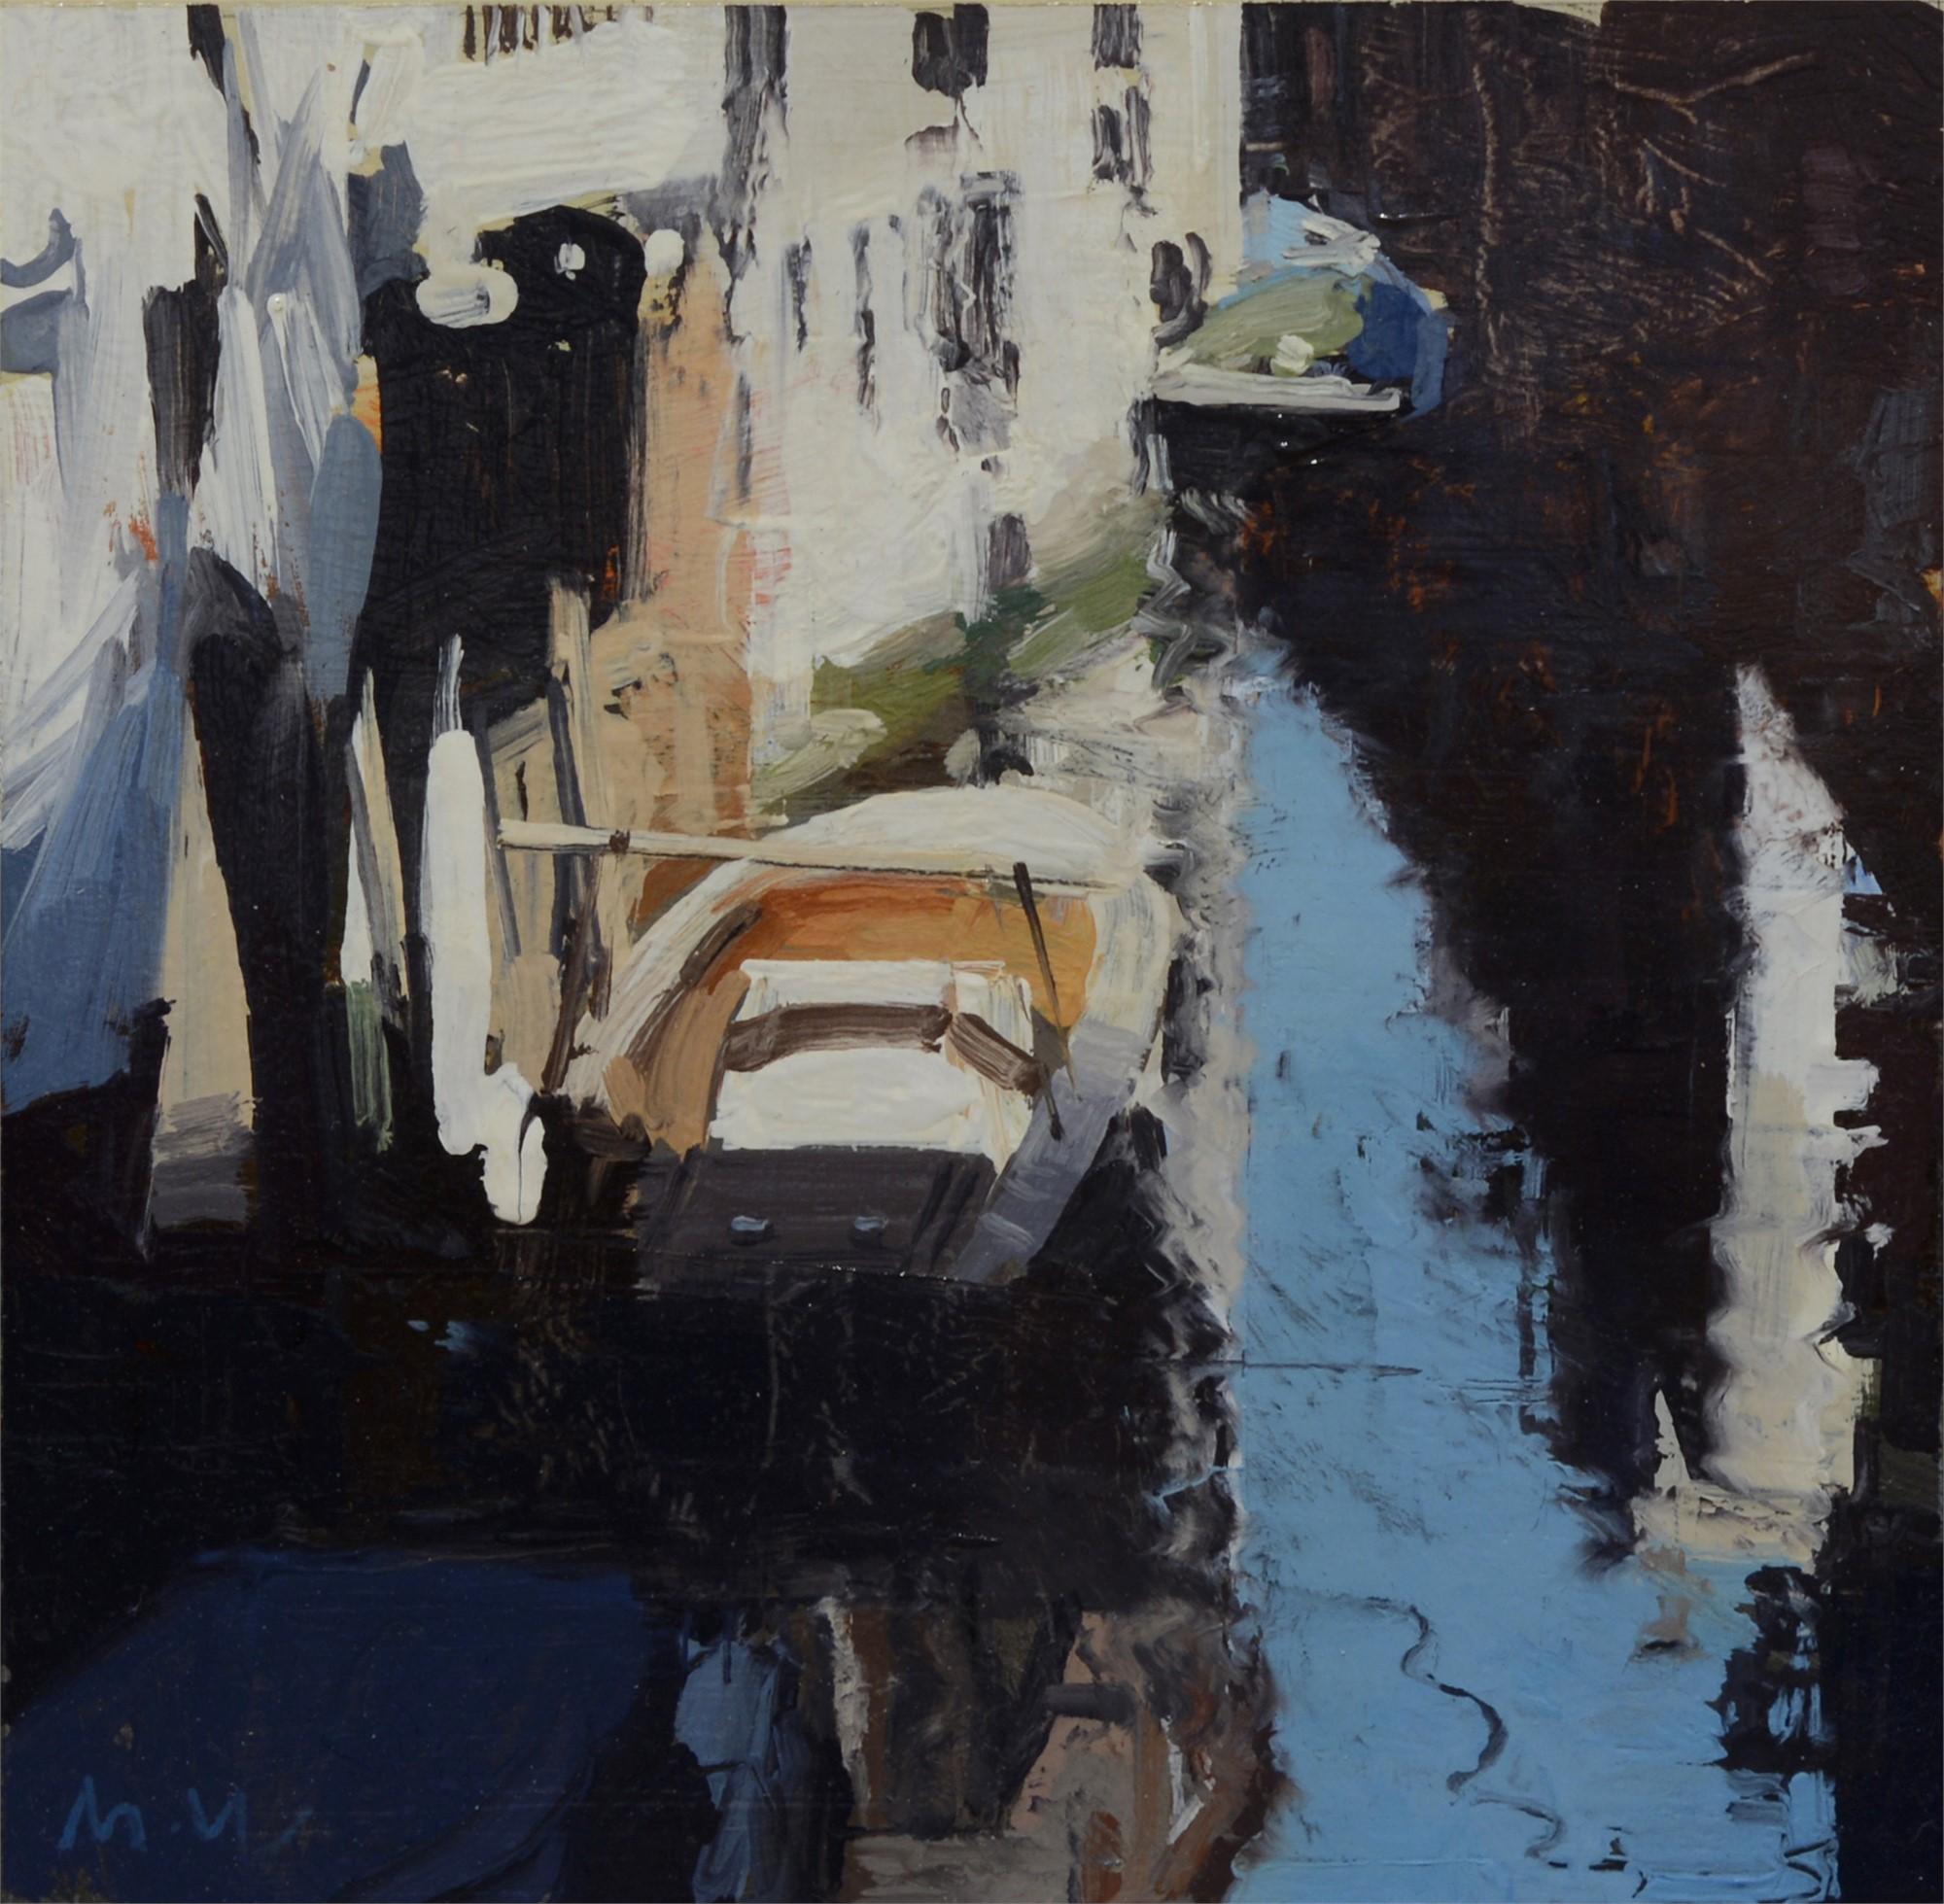 Canal Sketch 1 by Michael Workman